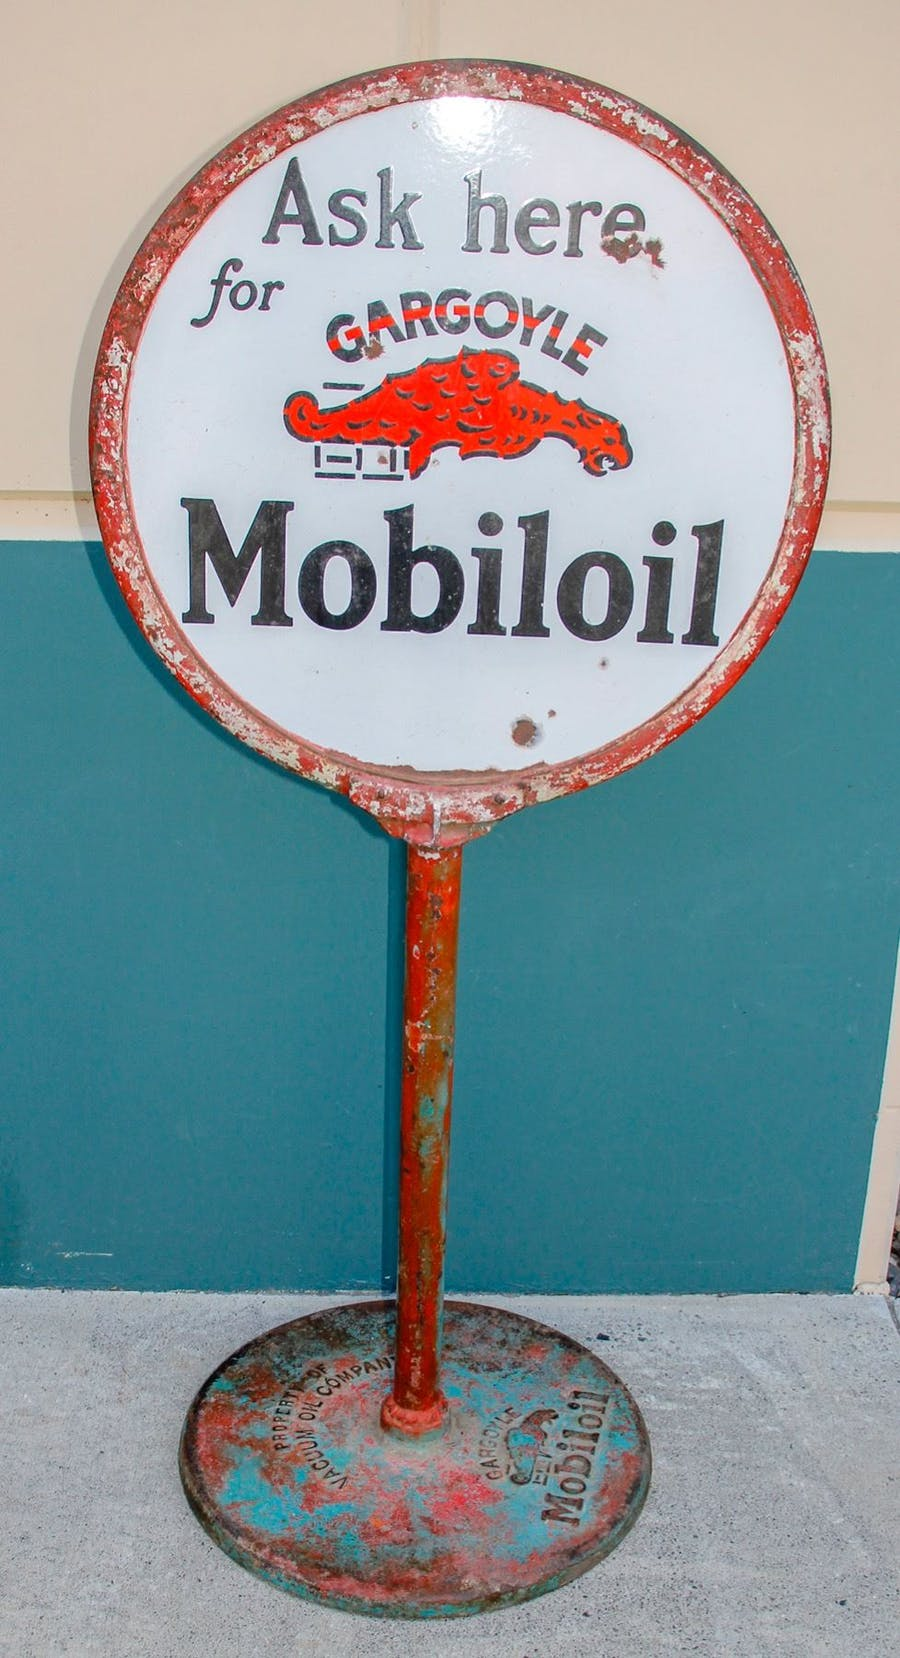 Mobiloil Gargoyle porcelain double-sided lollipop petroliana sign with original heavy lead base, a genuine early 1900s piece in all original condition, overall 54 inches tall (est. $1,700-$2,700).